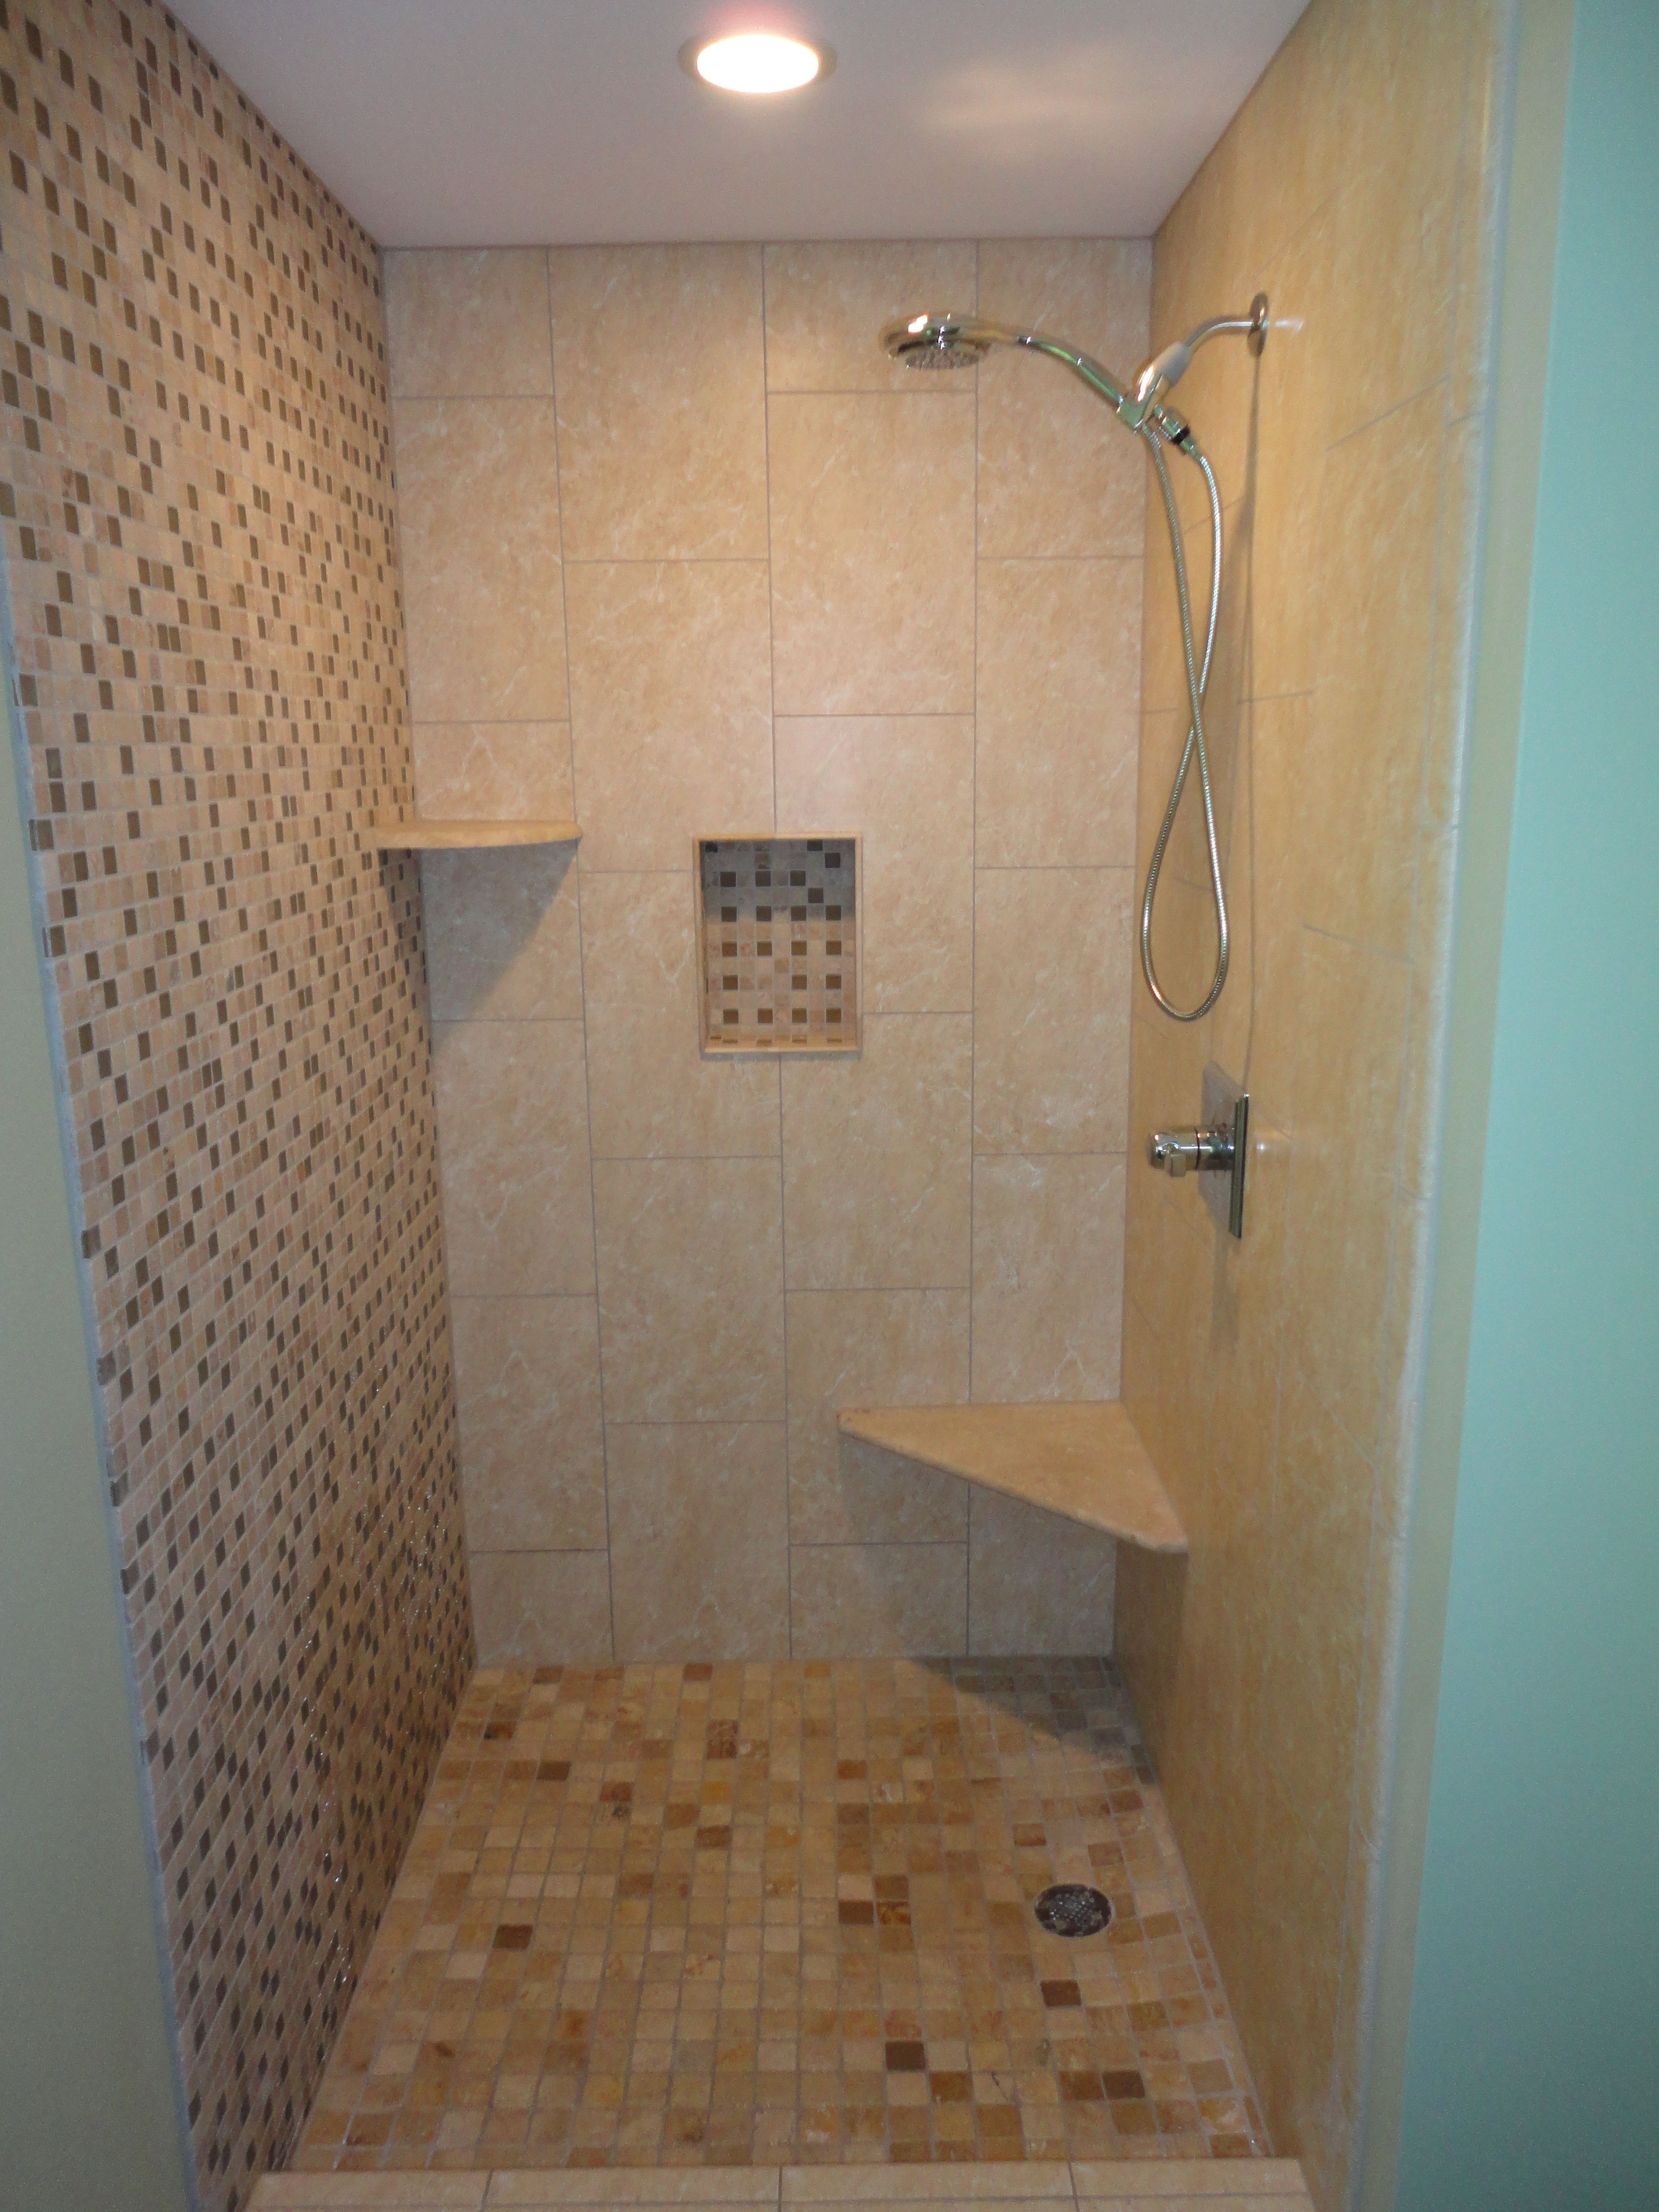 A view of the whole shower shows how all the pieces came together ...